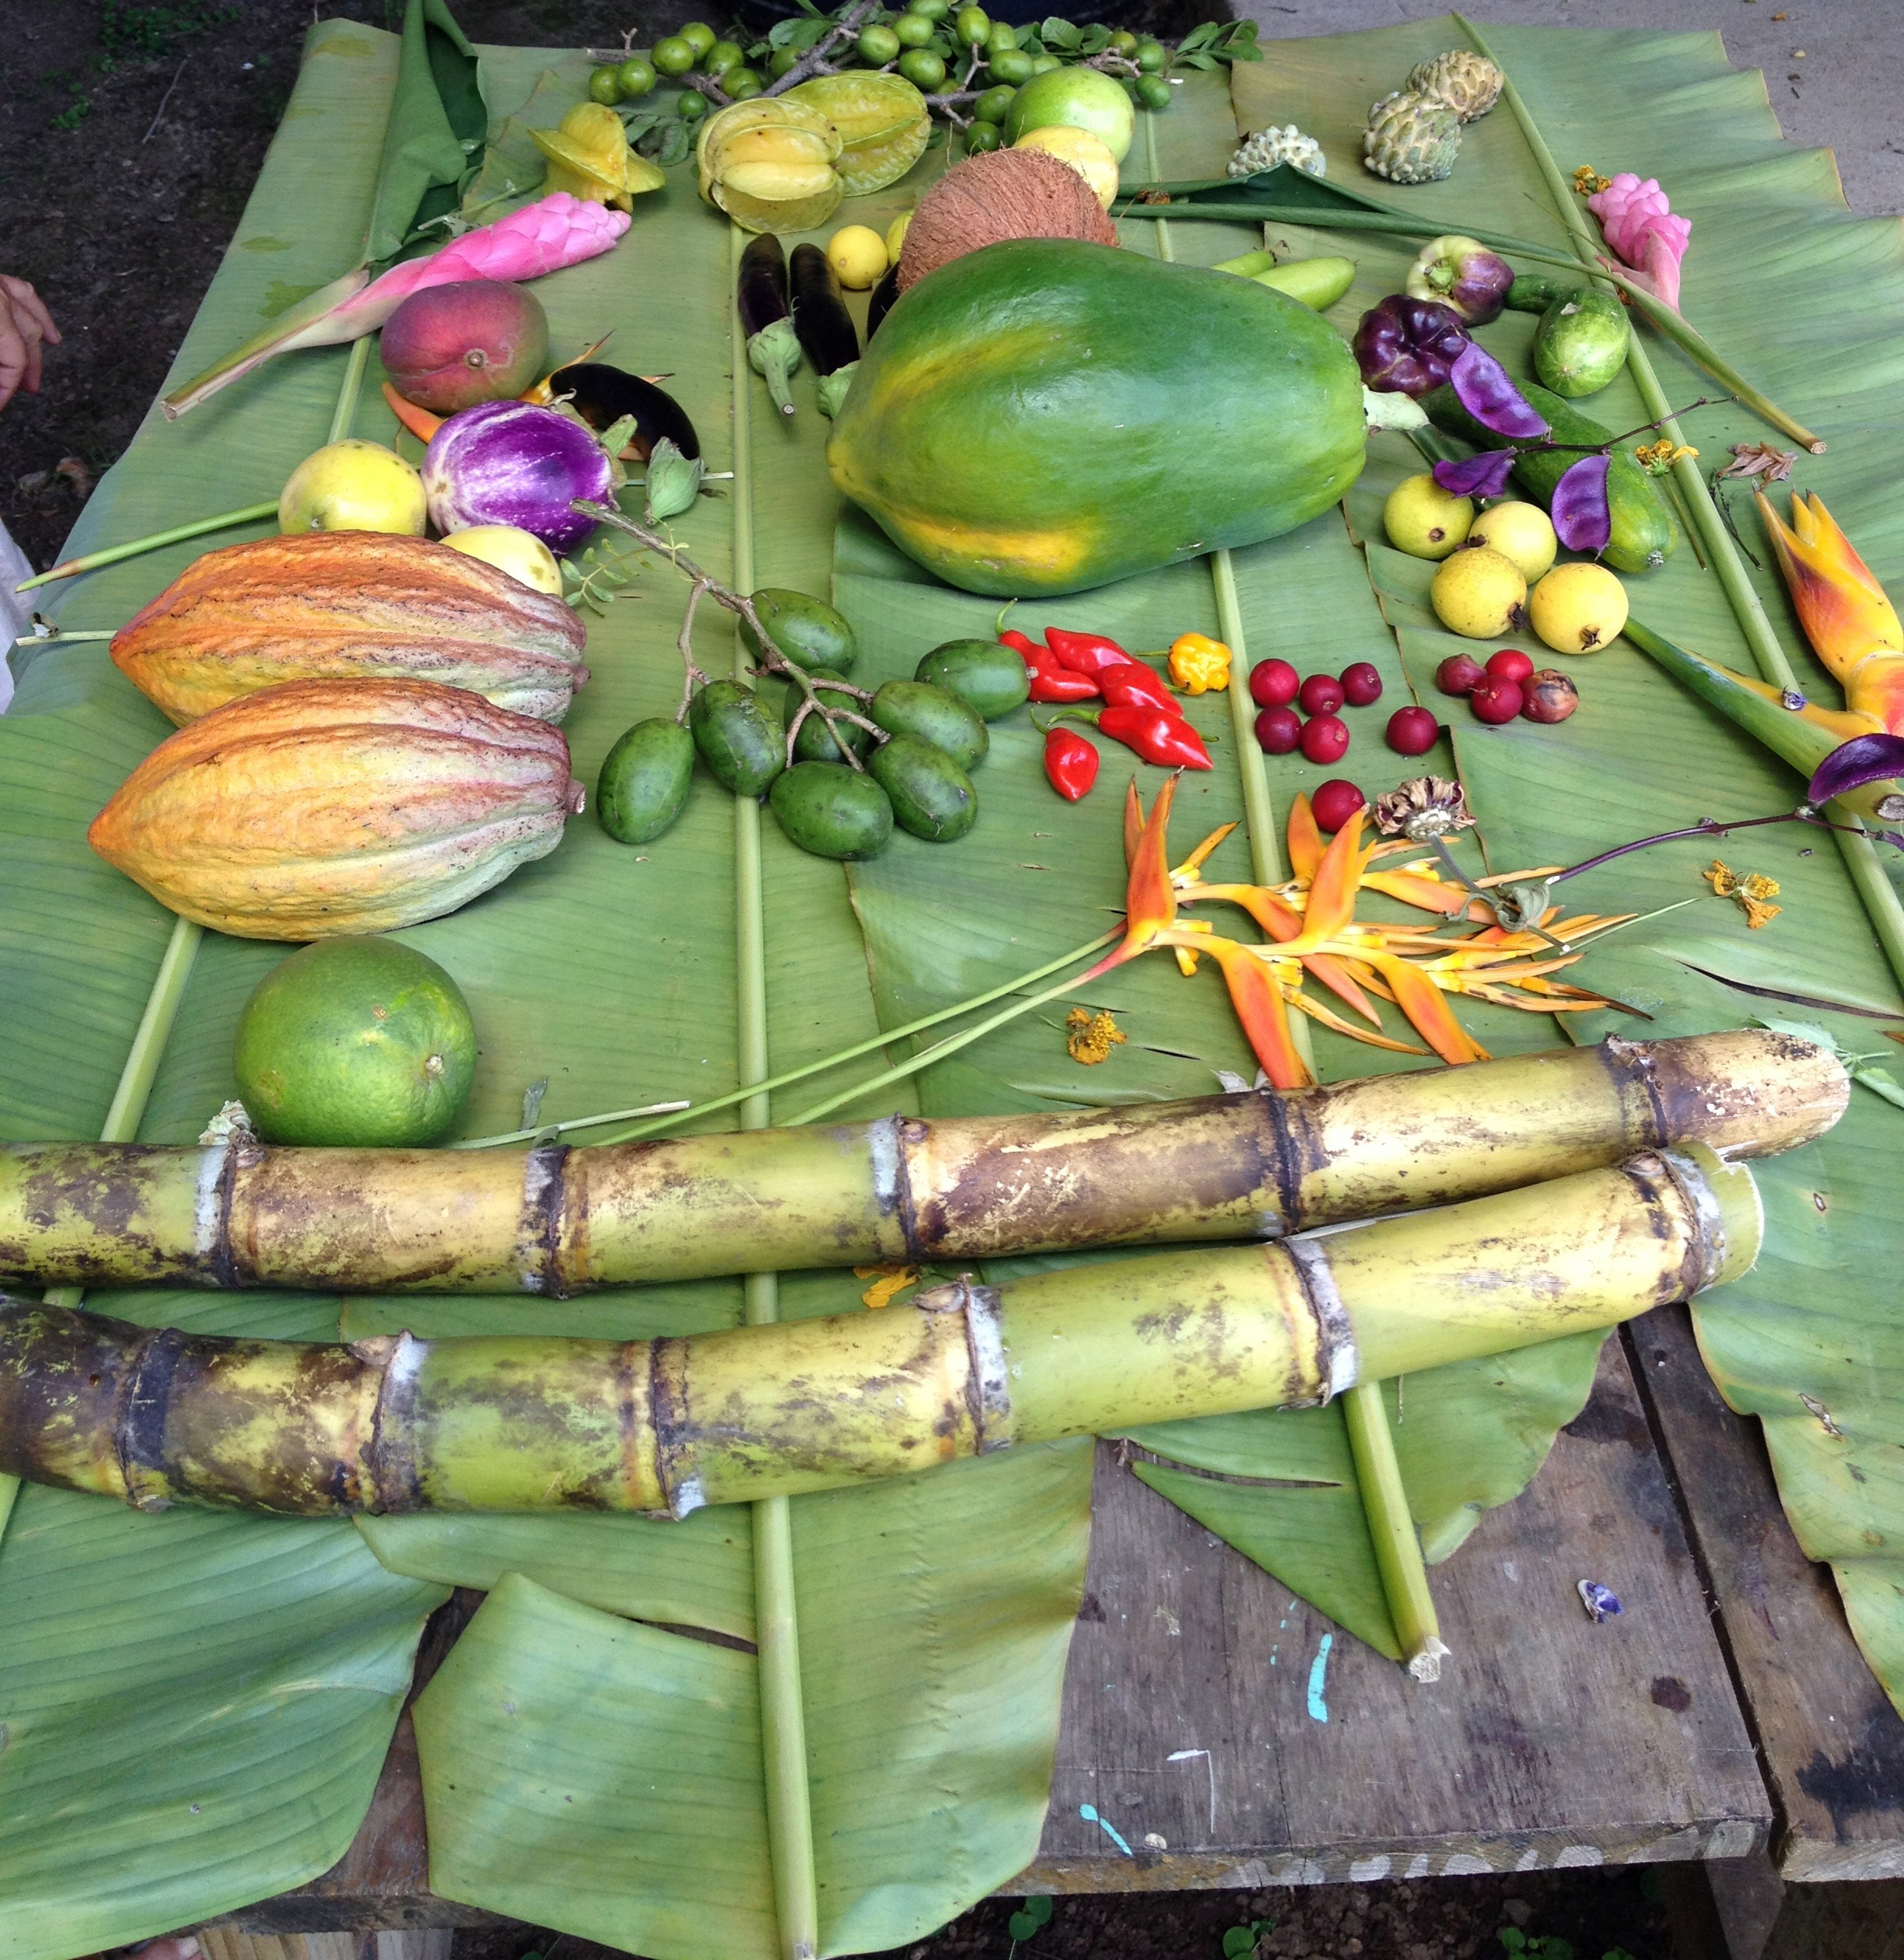 Emerald Estate harvest of colorful tropical fruits